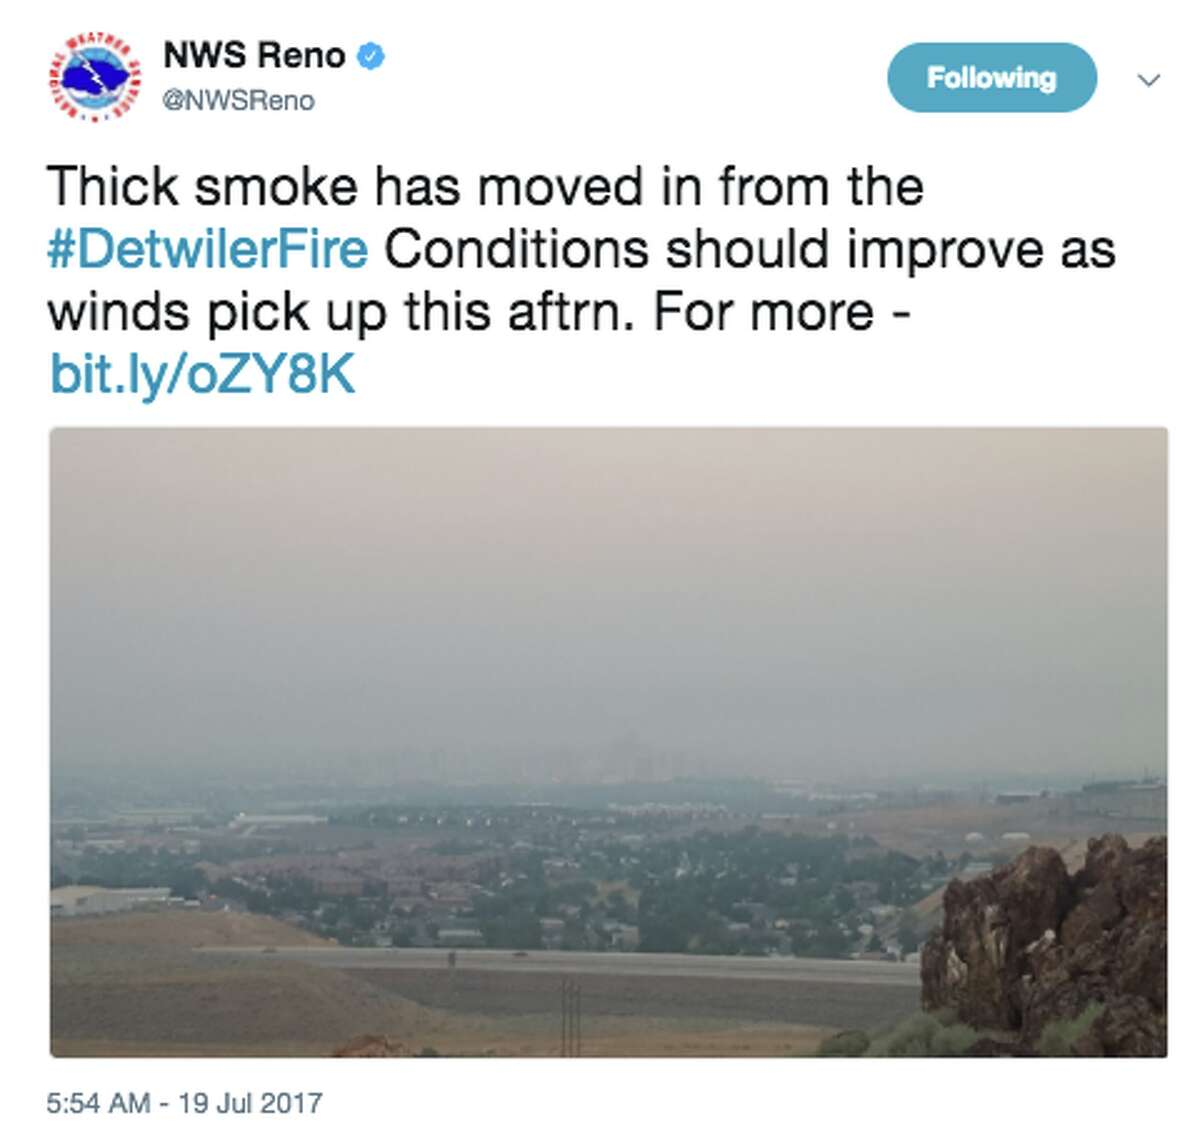 The National Weather Service shared news of a smoke-filed sky in Reno, Nev., on Twitter on July 19, 2017. Smoke from the Detwiler Fire in Mariposa County has blown into the Tahoe Basin, Reno and Carson Valley.